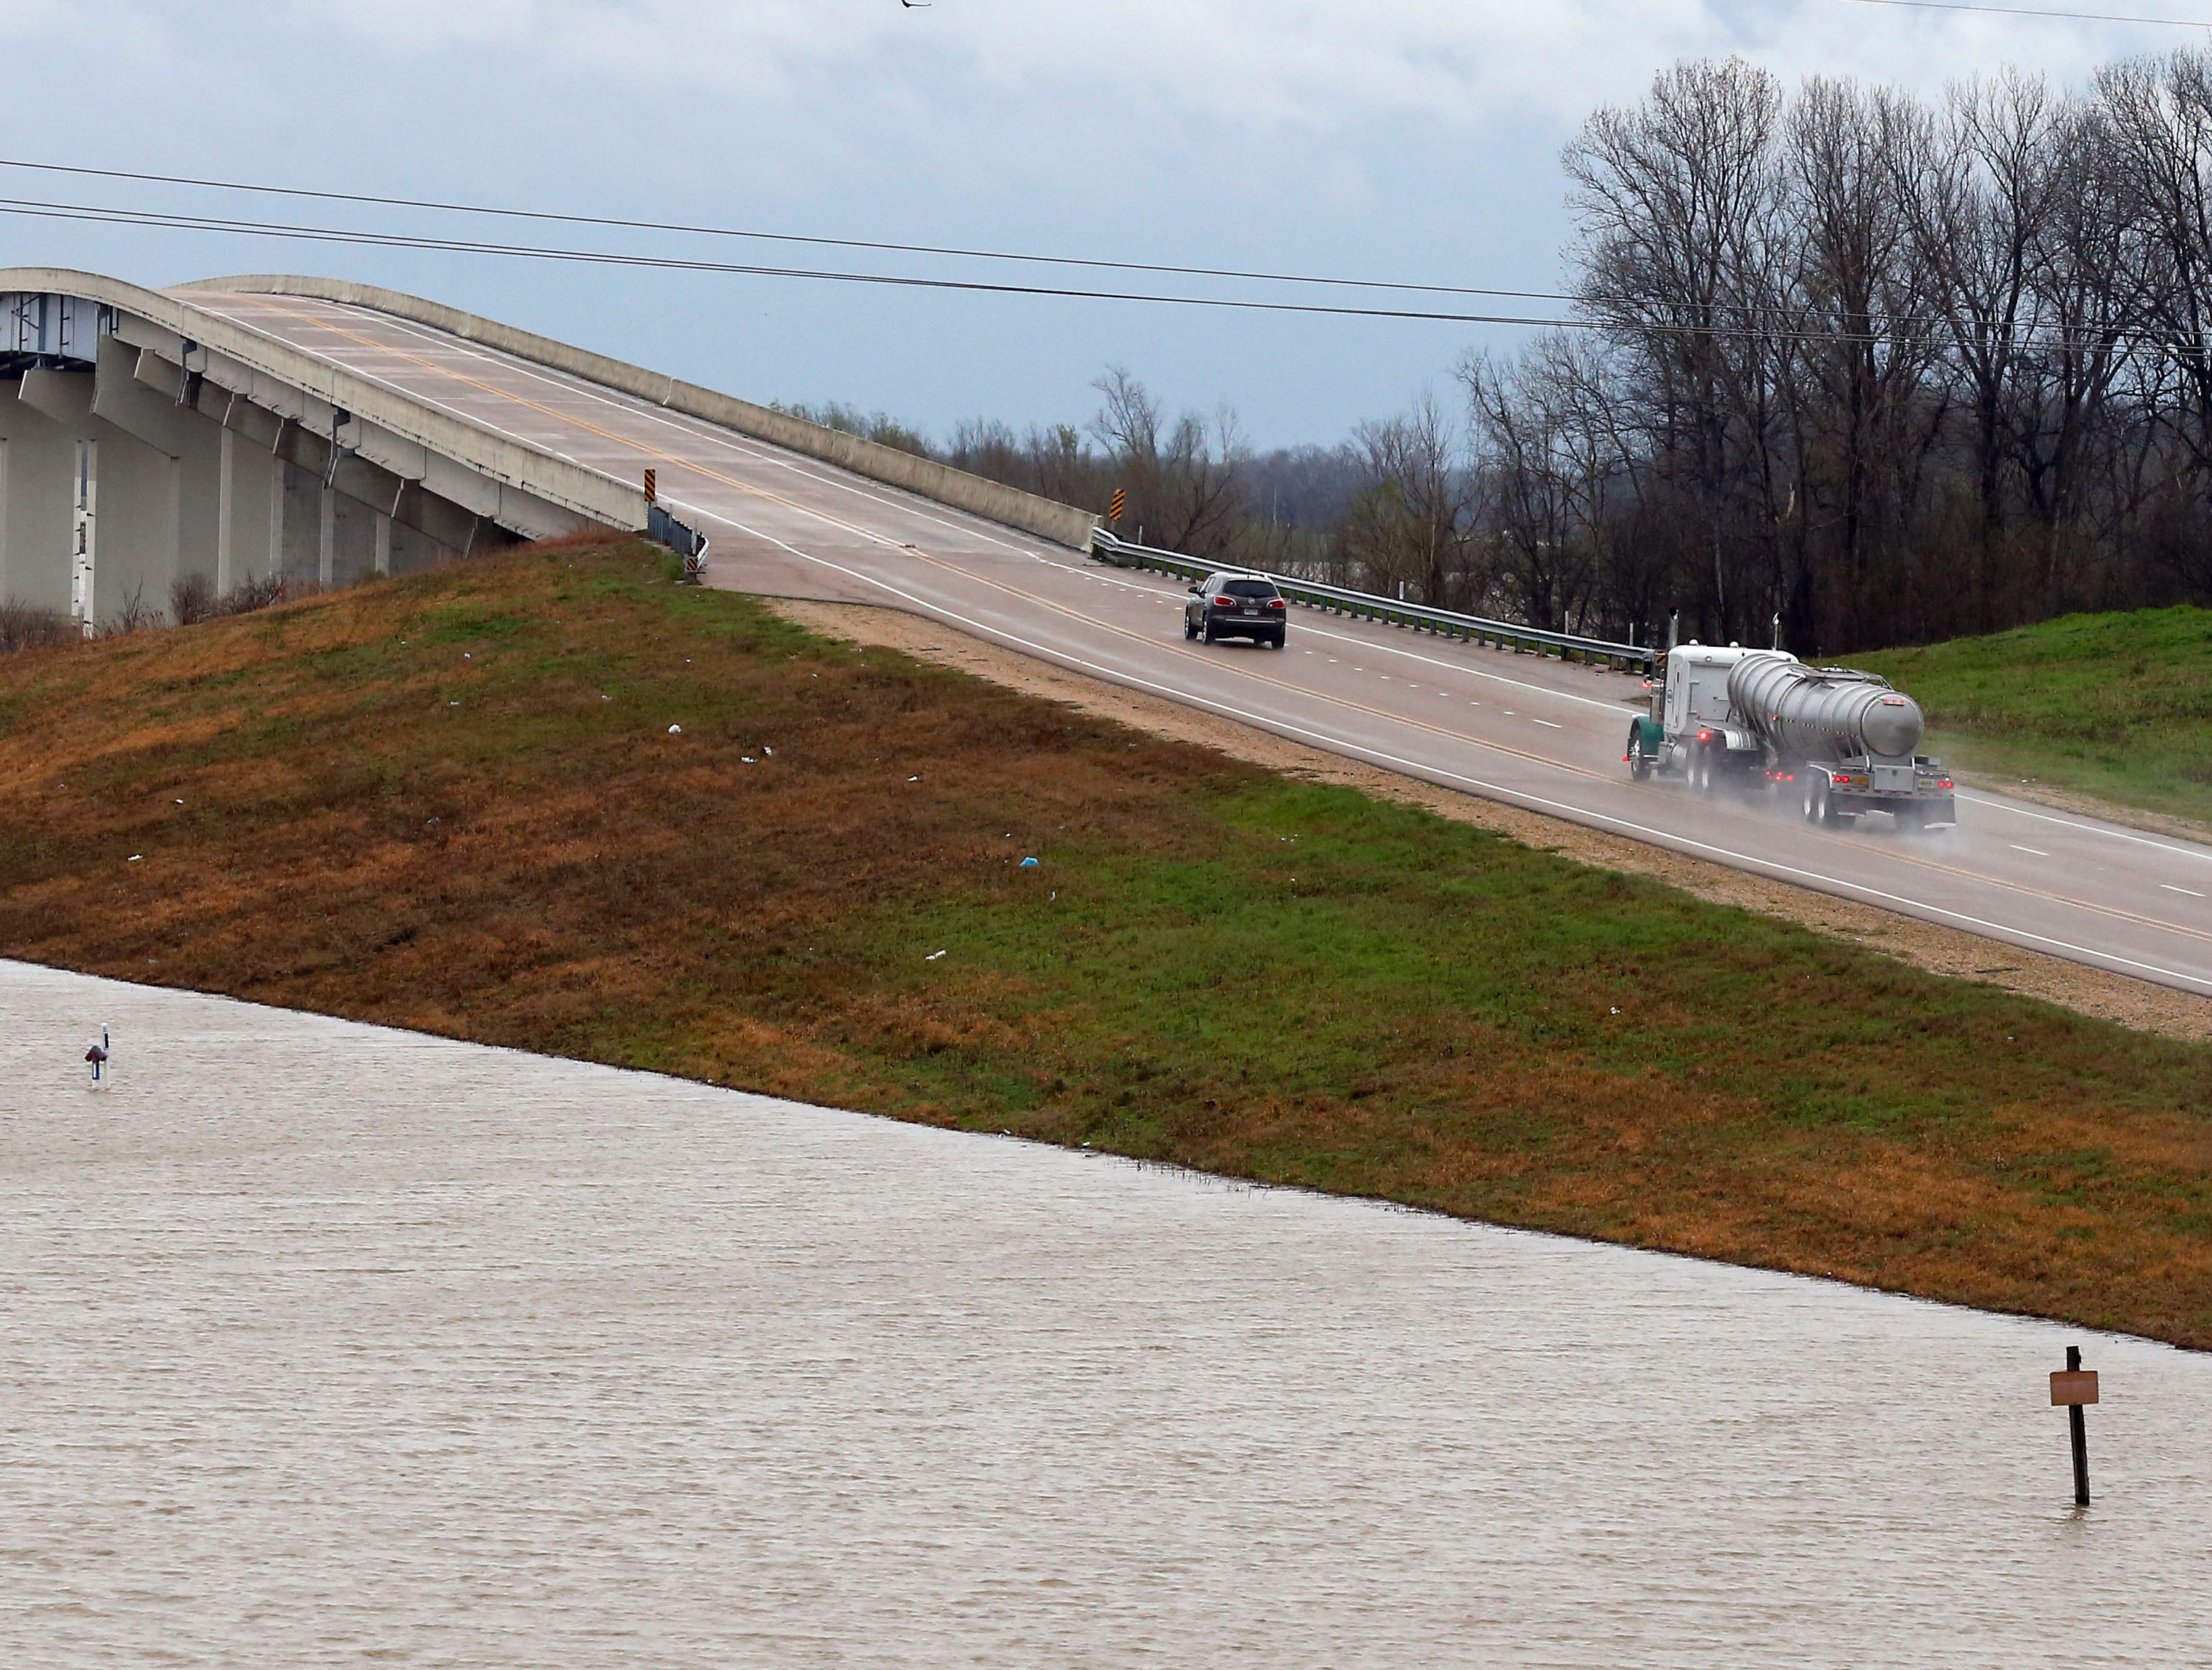 Yazoo River waters creep towards U.S. 61 in Redwood, Miss., Monday, March 11, 2019. This week the Federal Emergency Management Agency (FEMA), the Mississippi Emergency Management Agency (MEMA), along with select local emergency management offices will be conducting joint damage assessments in response to the severe storms and flooding are impacting the state. (AP Photo/Rogelio V. Solis)